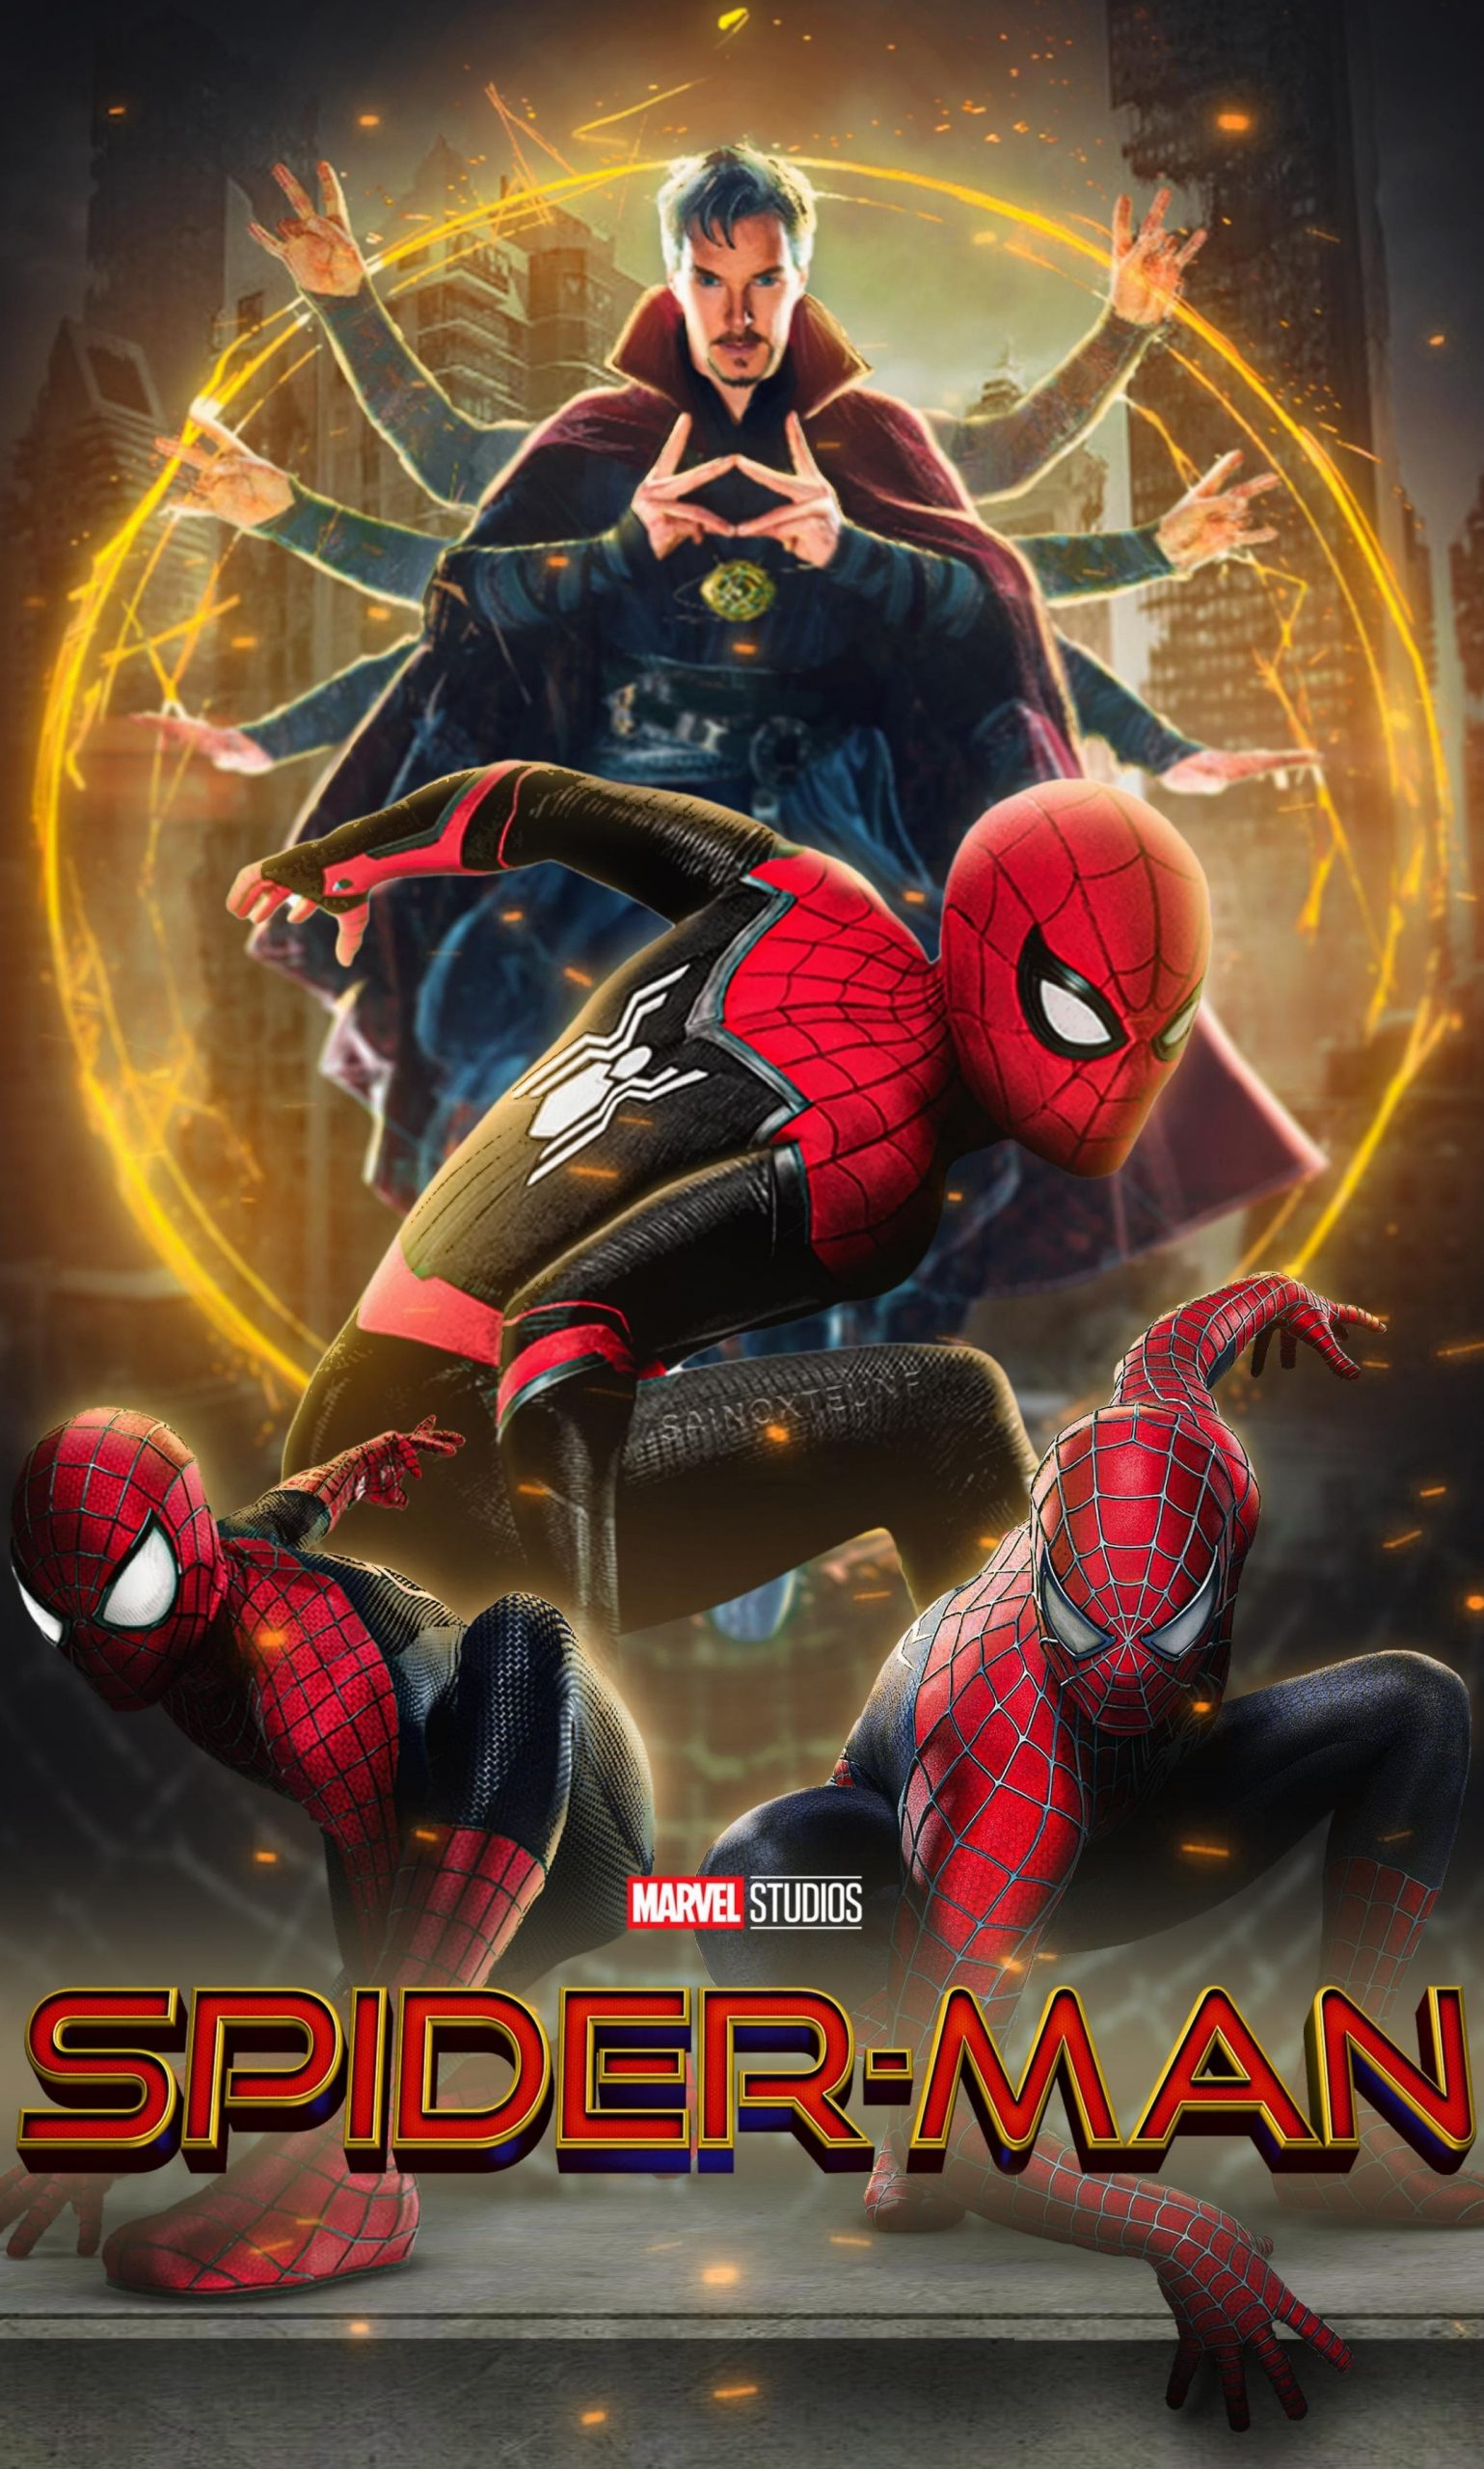 Spider-Man No Way Home 2021 Hindi Dubbed Official Trailer 1080p HDRip 51MB Download